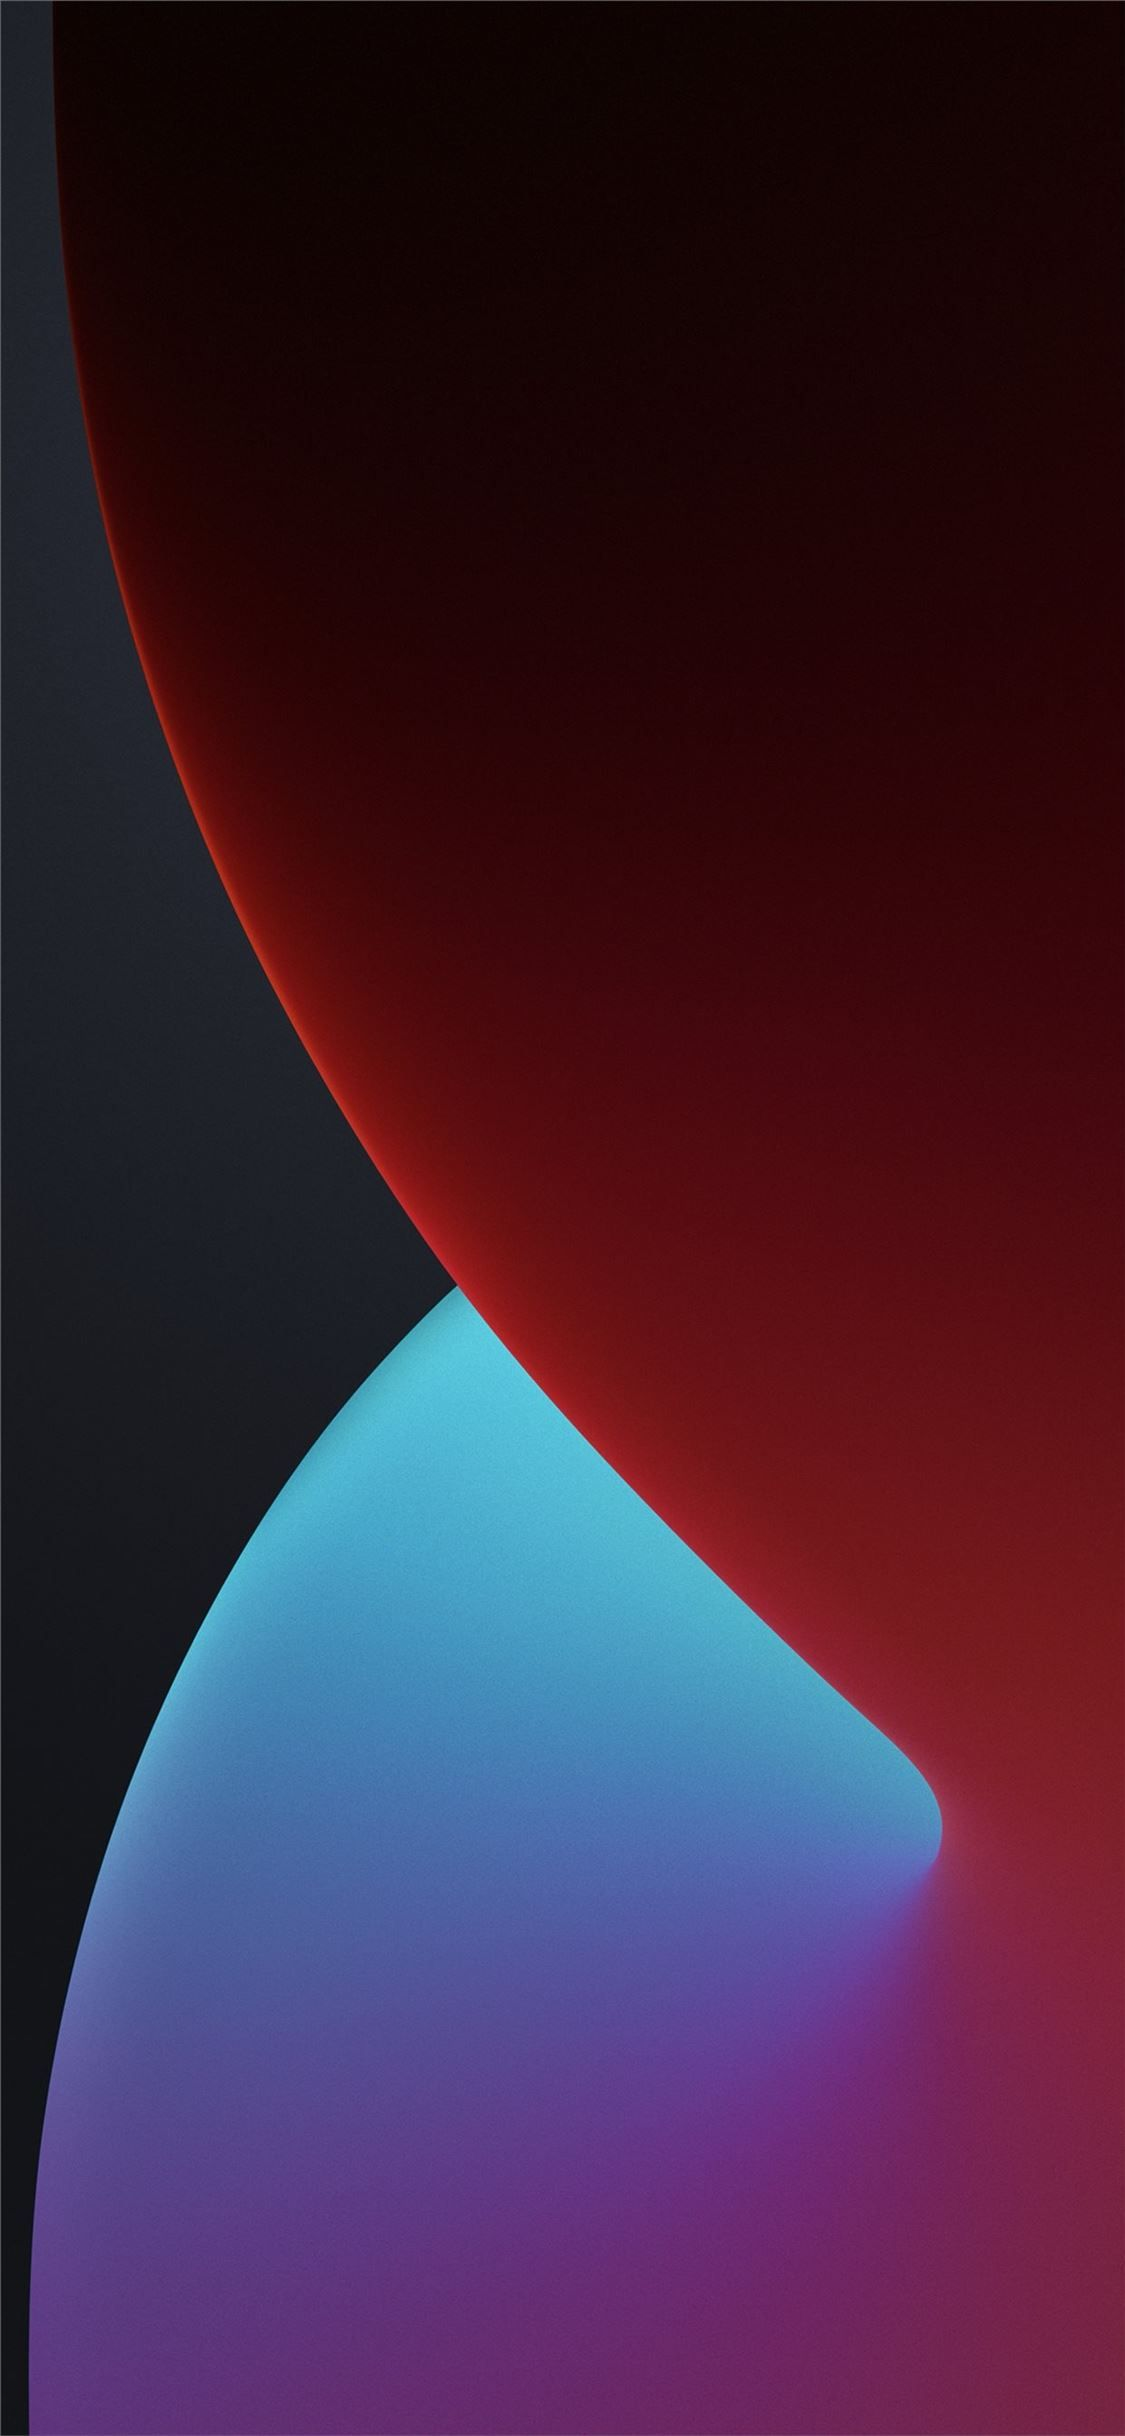 Ios 14 Stock Wallpaper Warm Dark Ios14stockwallpaper Wwdc2020 Aesthetic Apple Iphone11wallpa In 2020 Iphone Wallpaper Landscape Ipad Air Wallpaper Apple Wallpaper